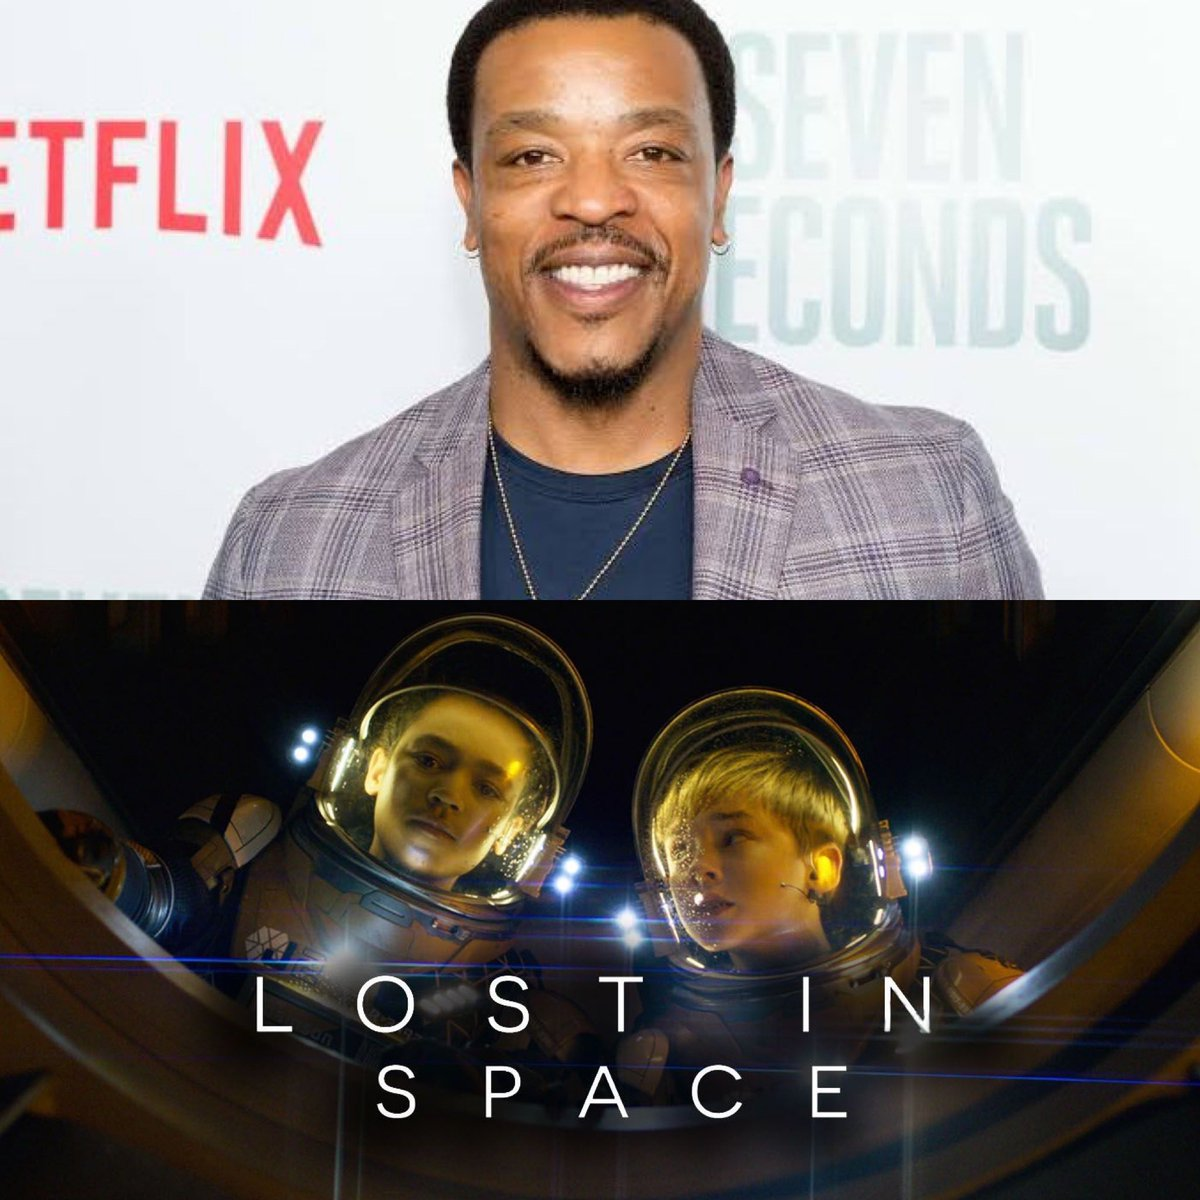 #RussellHornsby has joined the cast of #Netflix's #LostinSpace for the series' third and final season. Hornsby's role will be a recurring guest star.  #LostinSpacenetflix #TobyStephens #MollyParker #MaxwellJenkins #MinaSundwall #TaylorRussell #IgnacioSerricchio #ParkerPosey https://t.co/0iX7nA7r1S